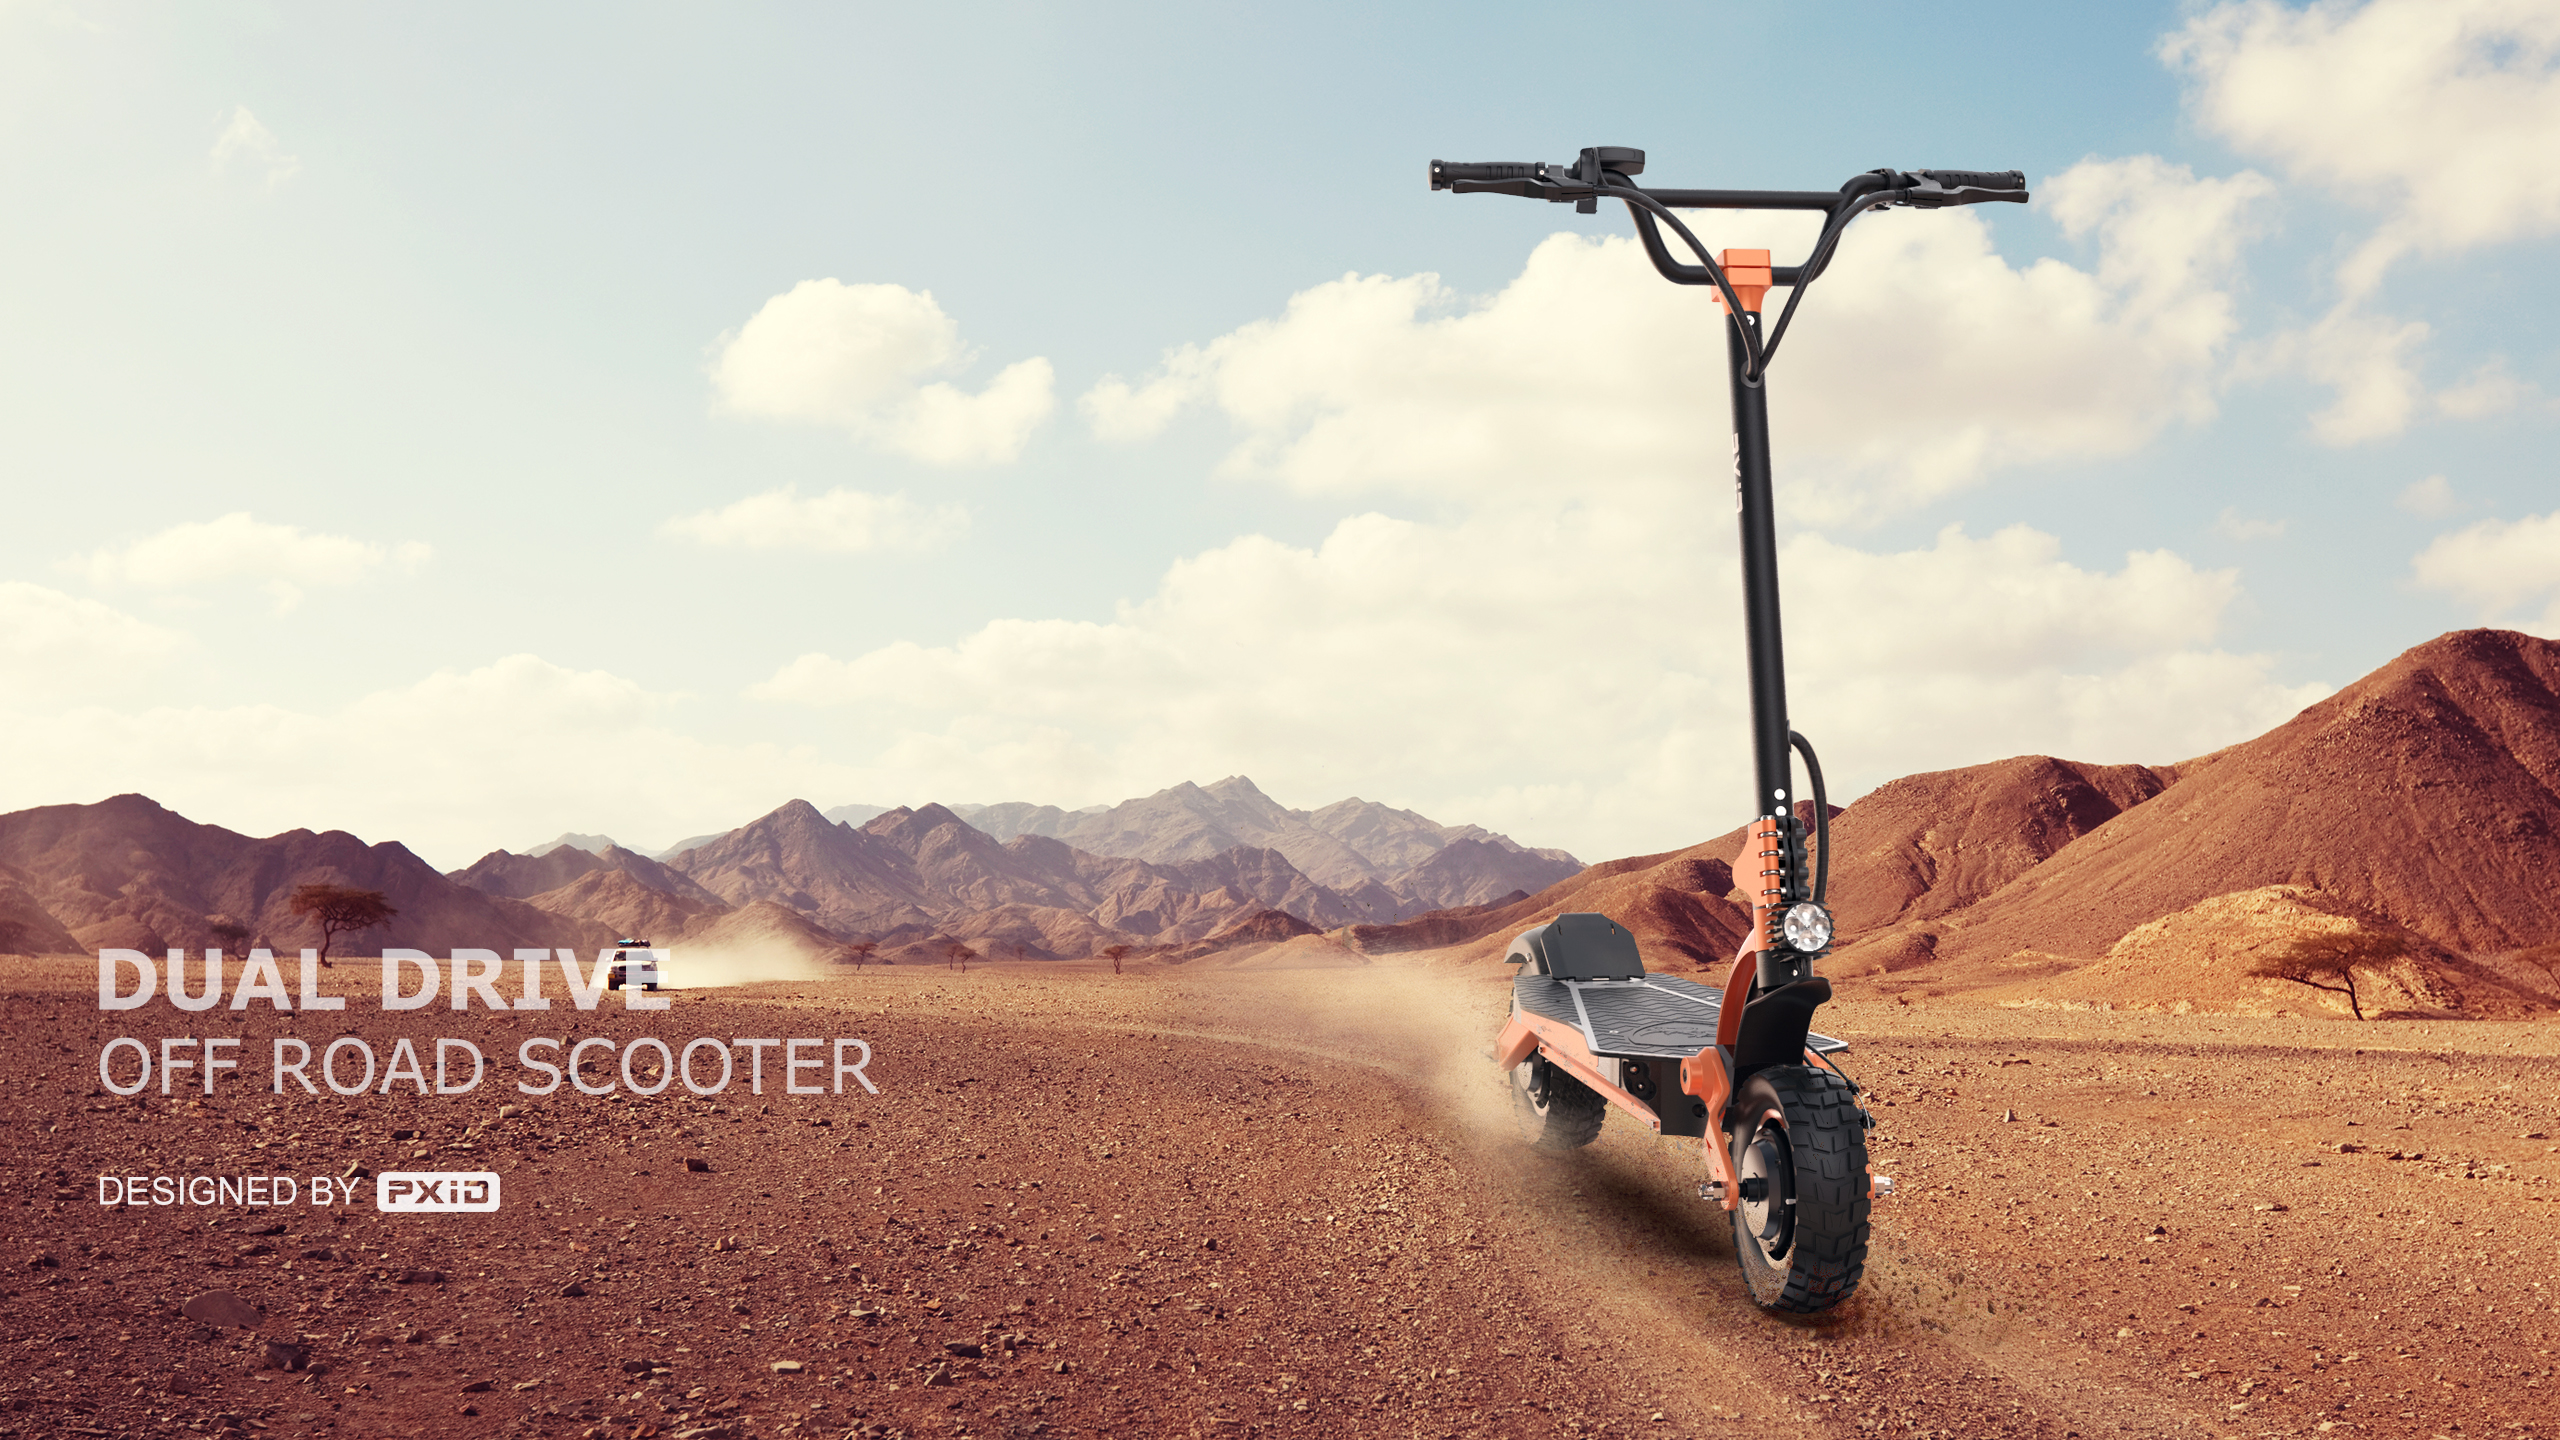 2021 dual-drive off-road electric scooter design